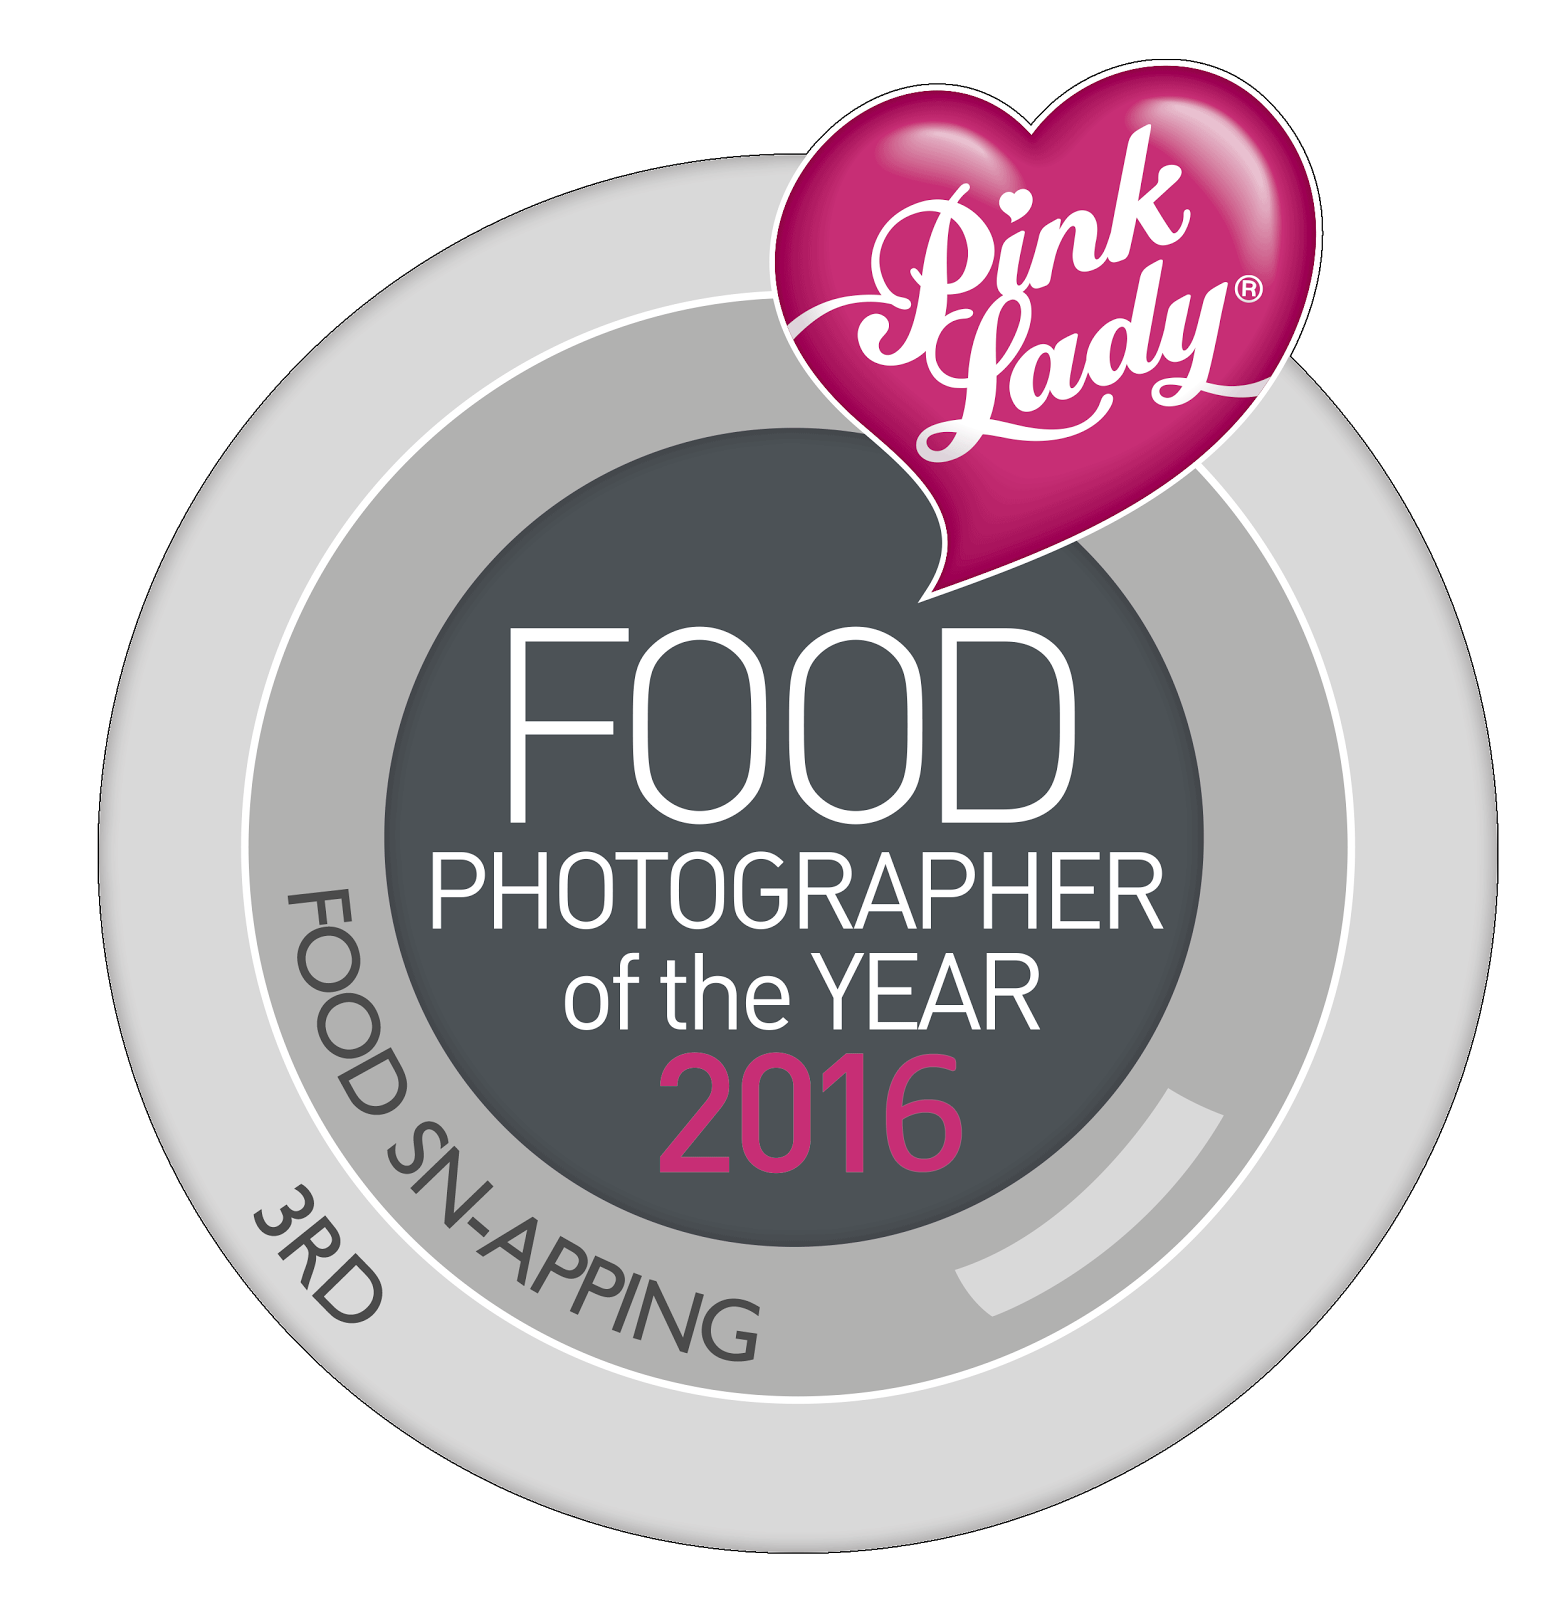 Pink Lady®  Food Photographer of the Year  2016